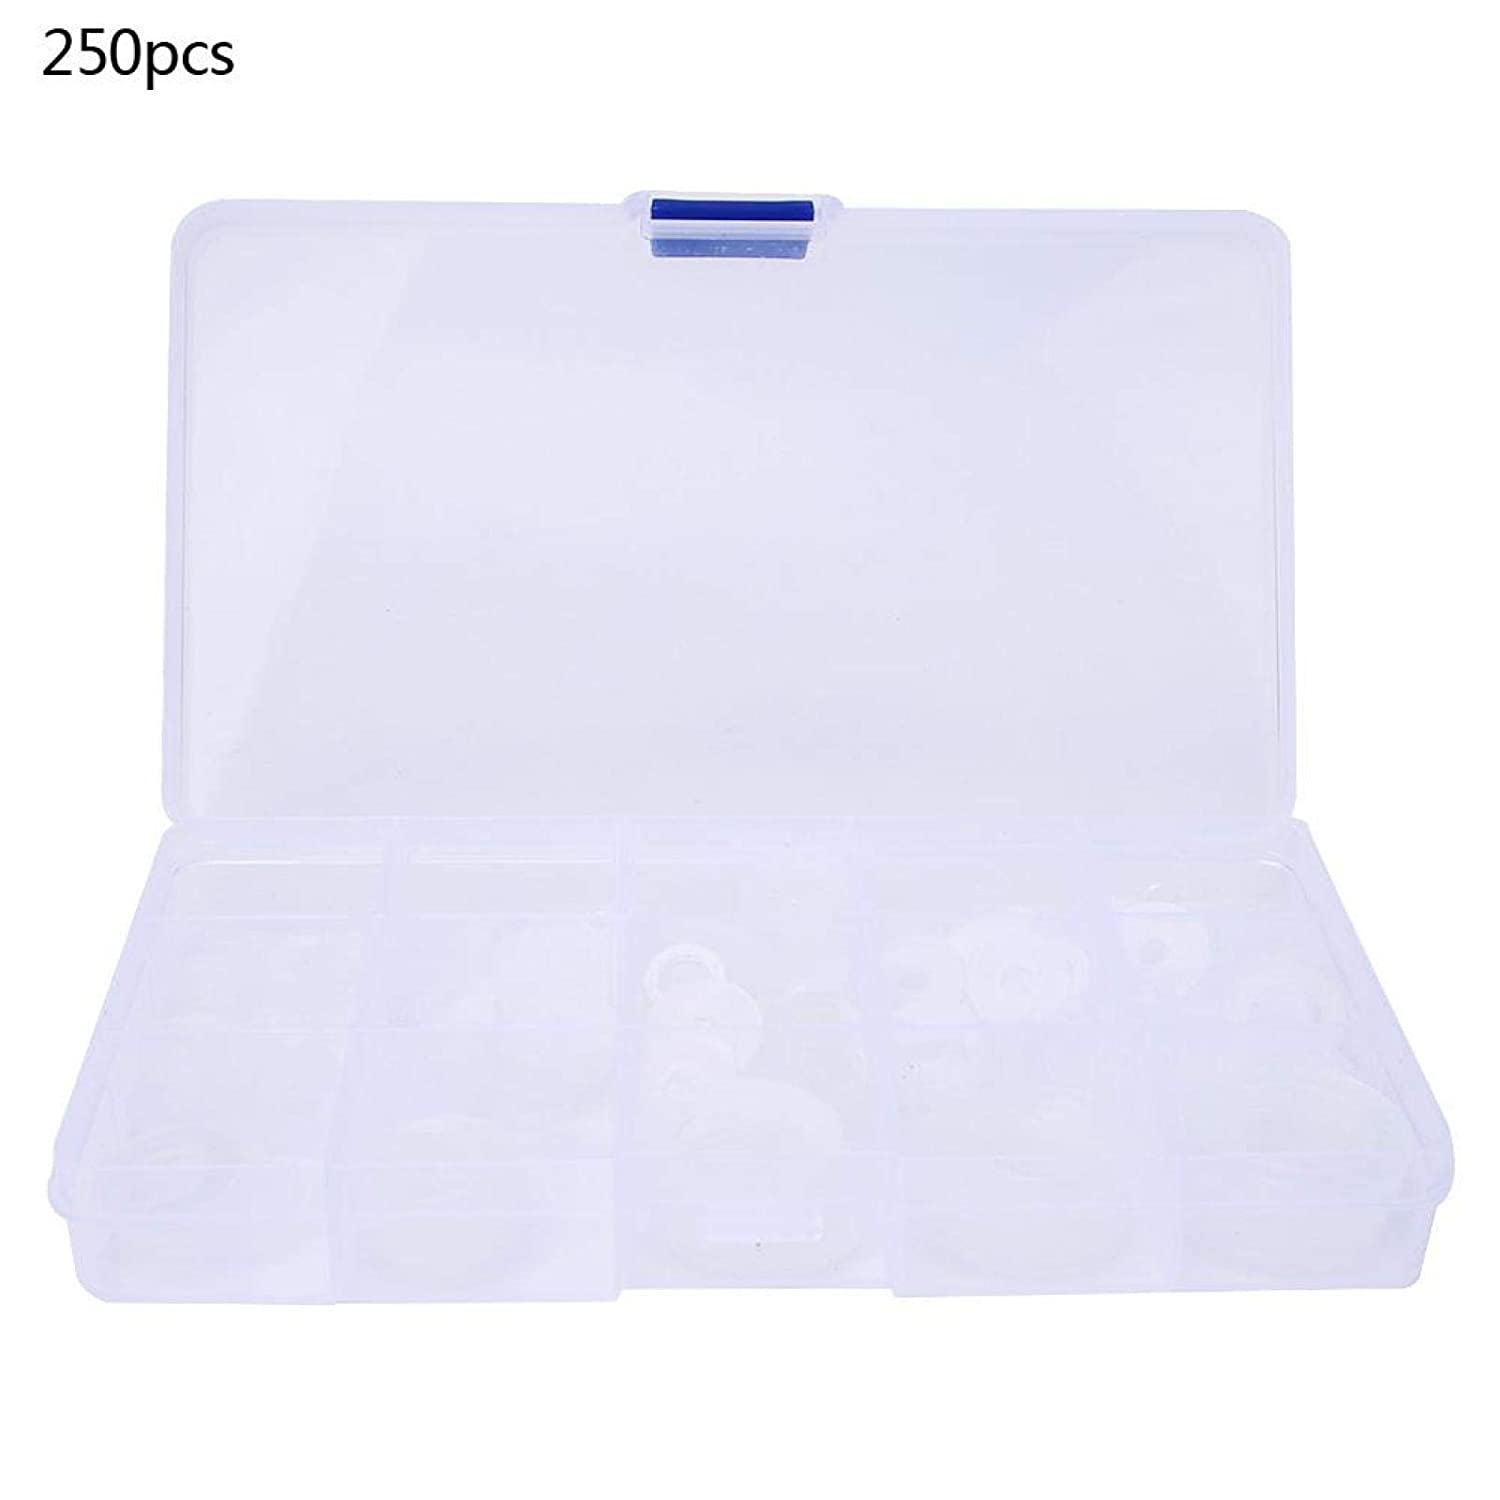 250PCS Nylon Washer Durable Material Firm Nylon Flat Washer Water Pipe Leakproof Sealing Gasket Assortment Kit Wearable for Home for Industry